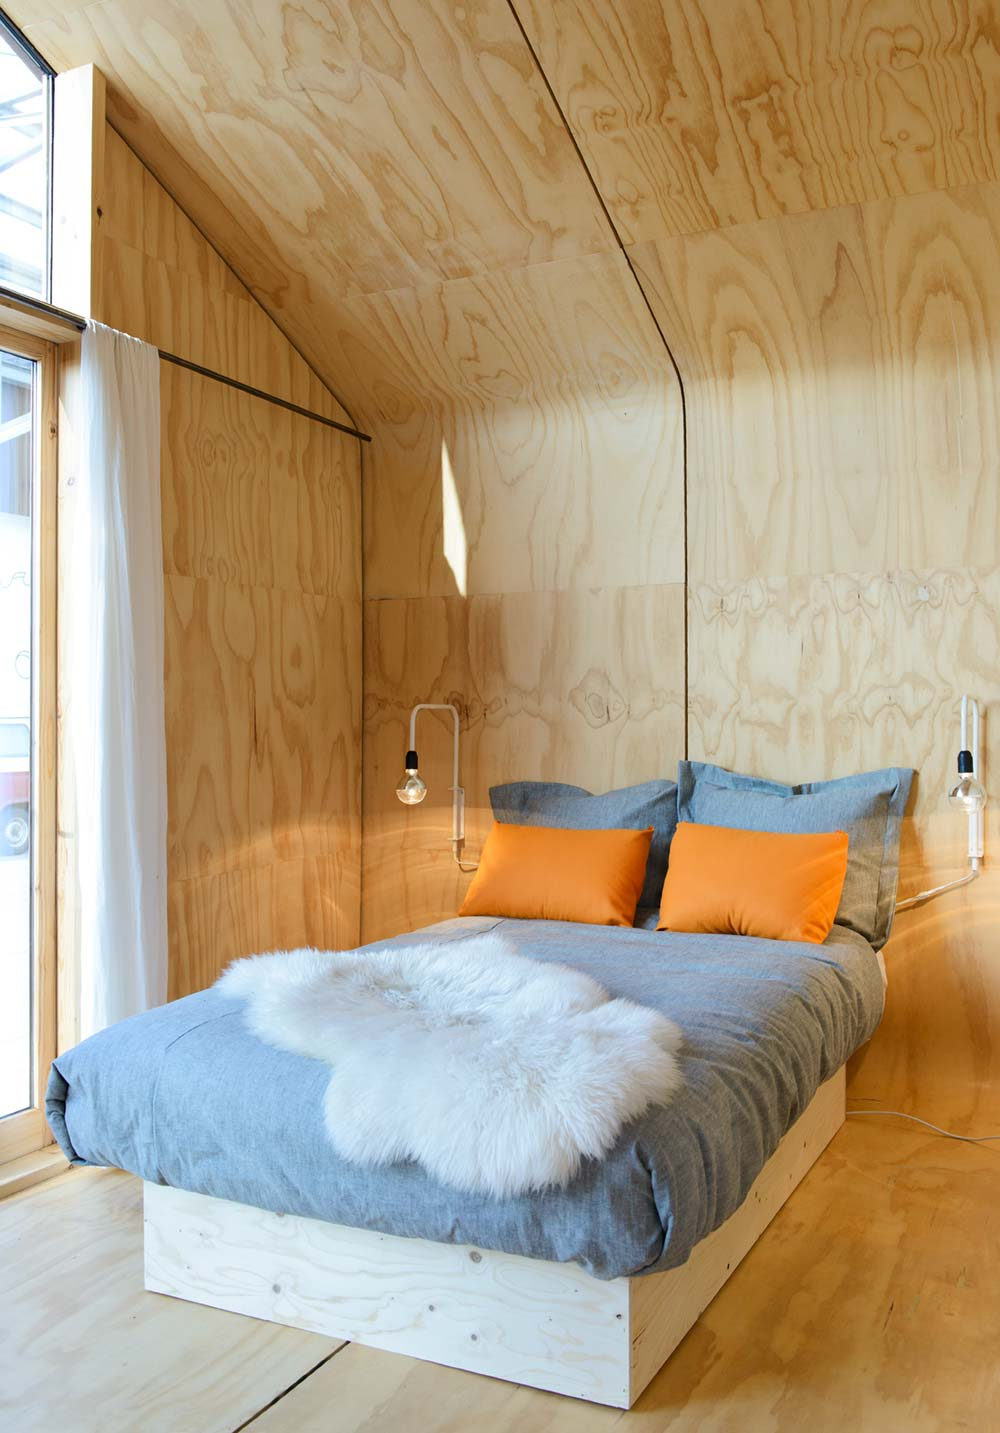 Small prefab cabin bedroom